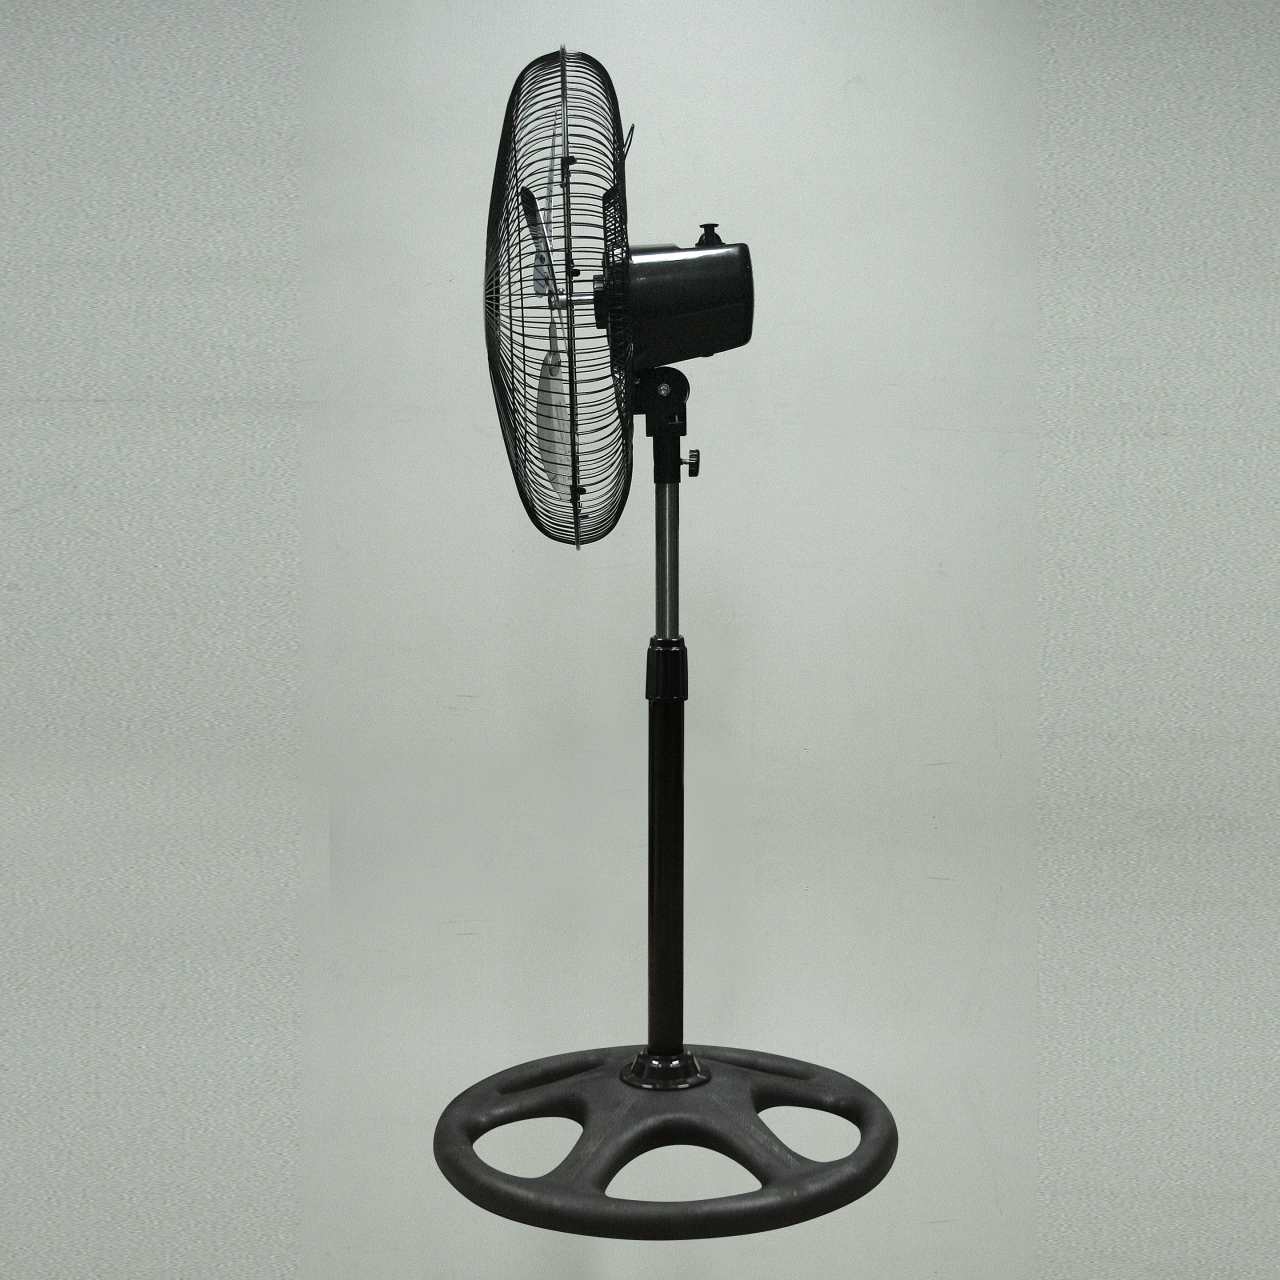 Use Electric Fans to Facilitate Airflow